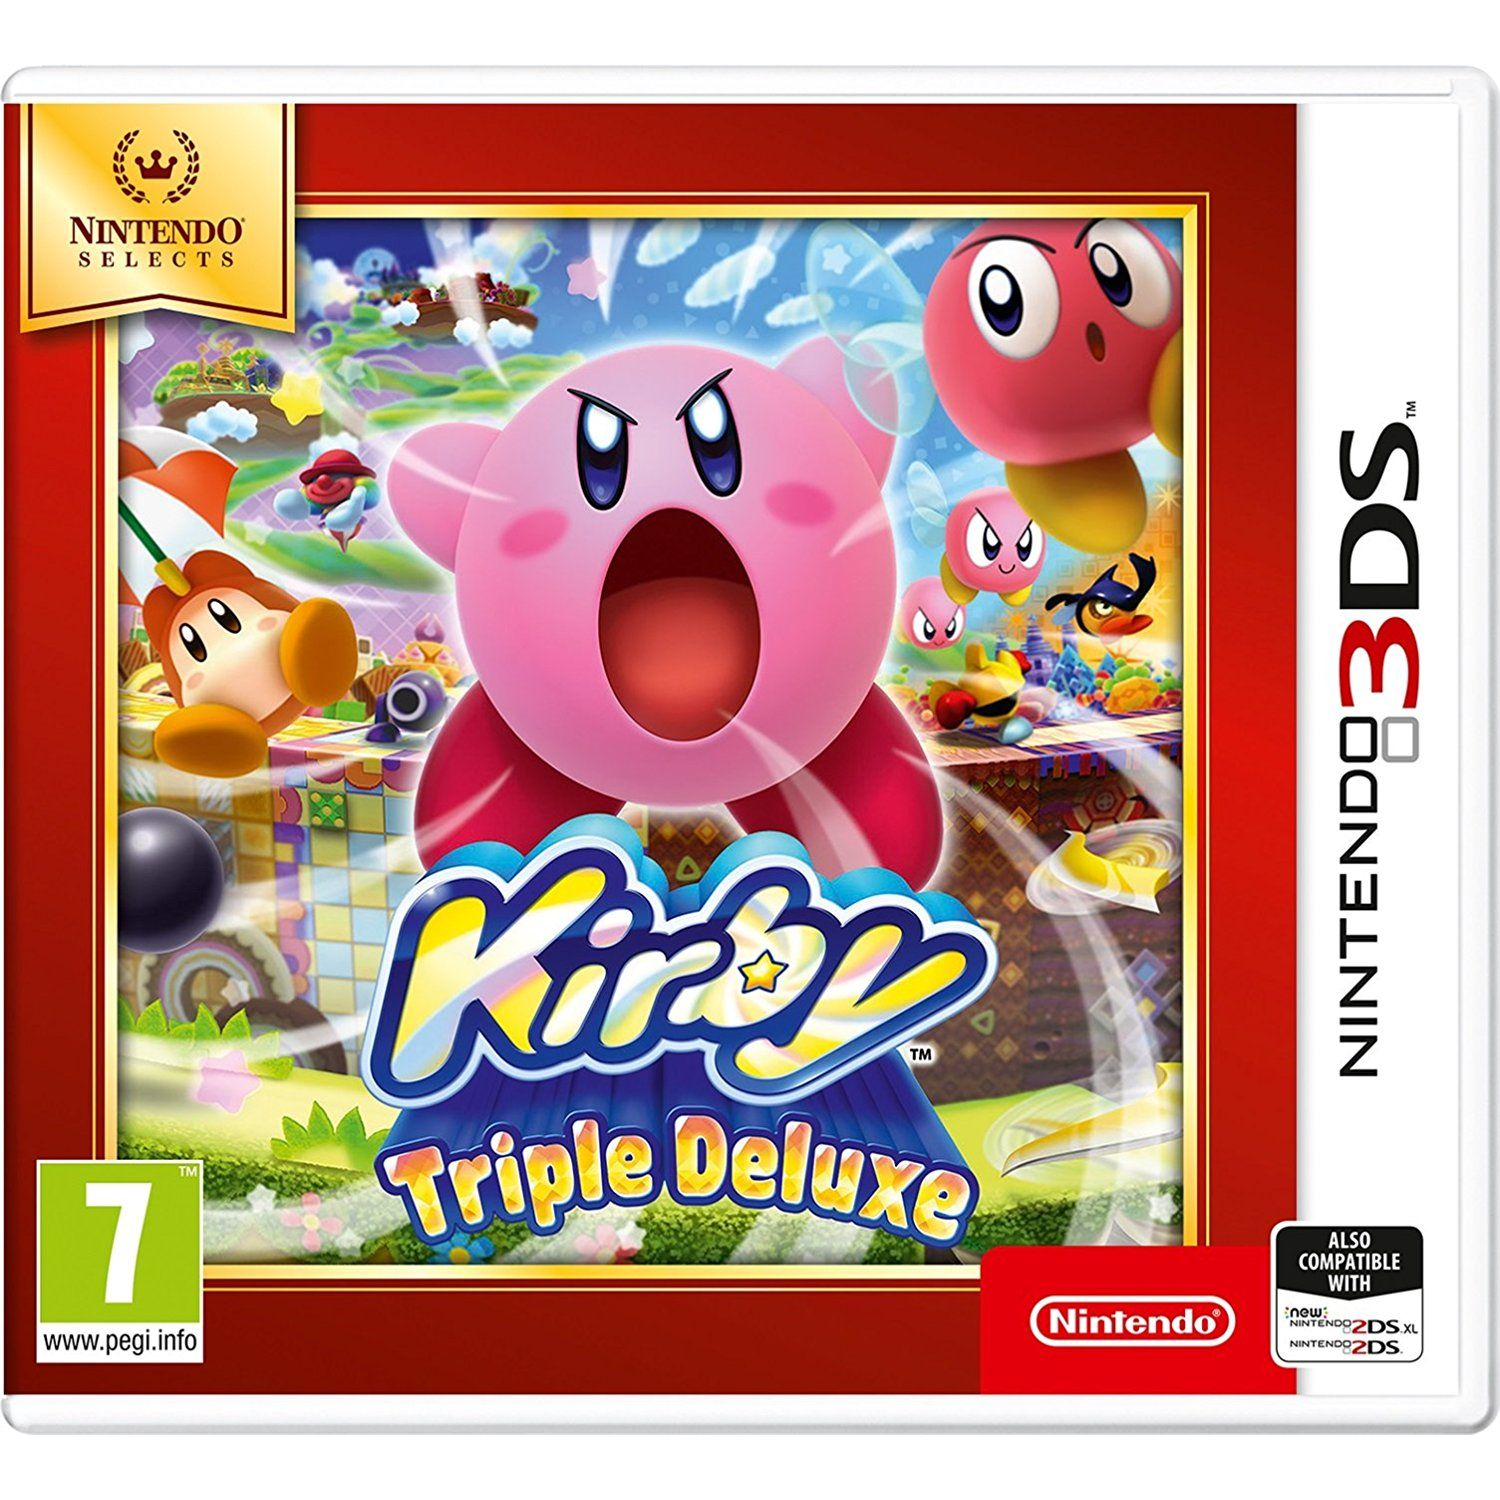 KIRBY TRIPLE DELUXE - SELECTS (3DS, 2DS)